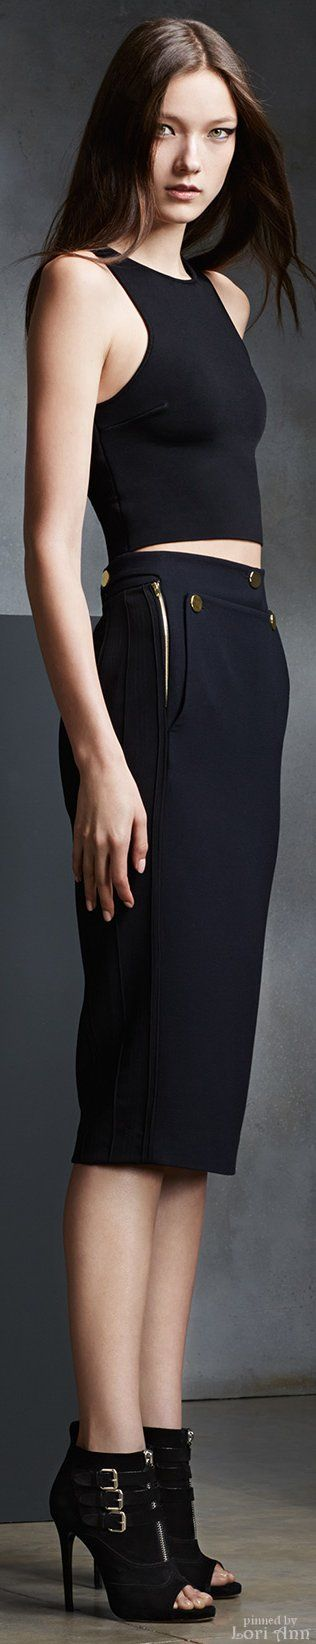 Issa Pre-Fall 2015 women fashion outfit clothing style apparel @roressclothes closet ideas